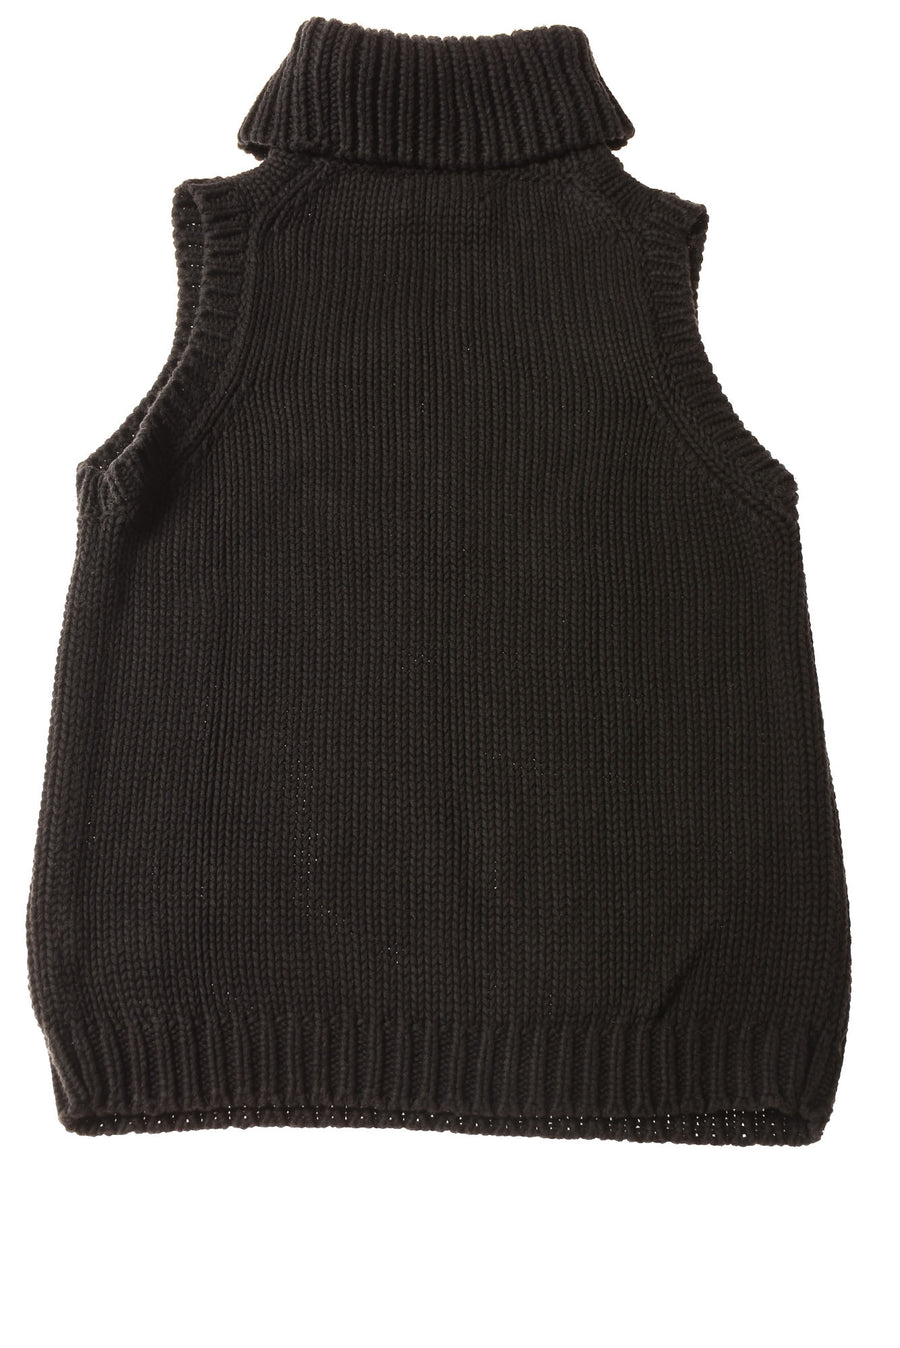 USED Ralph Lauren Women's Sweater Small Black